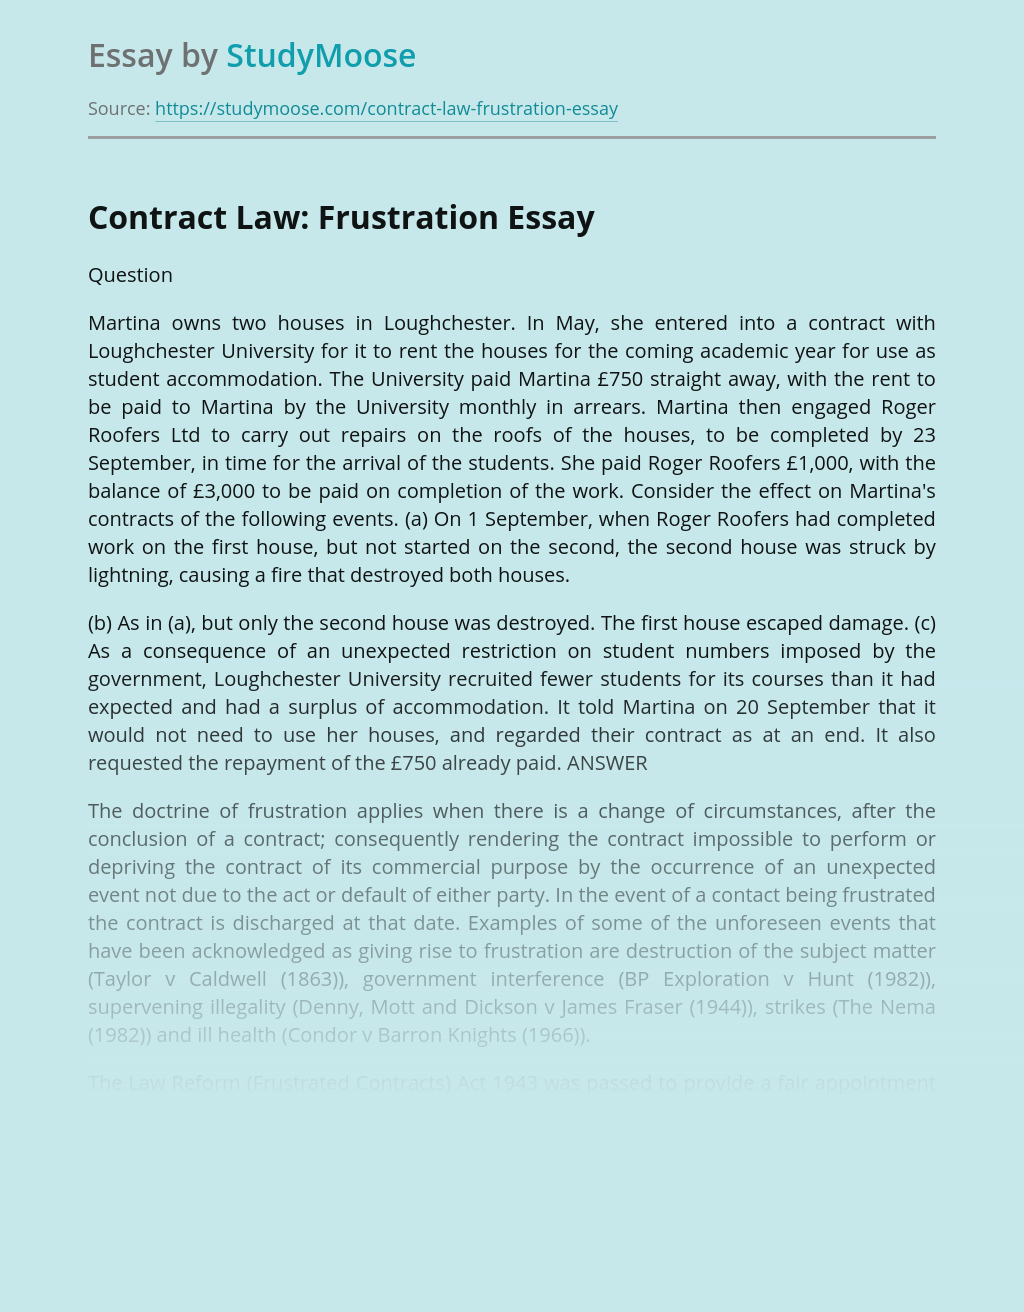 Contract Law: Frustration